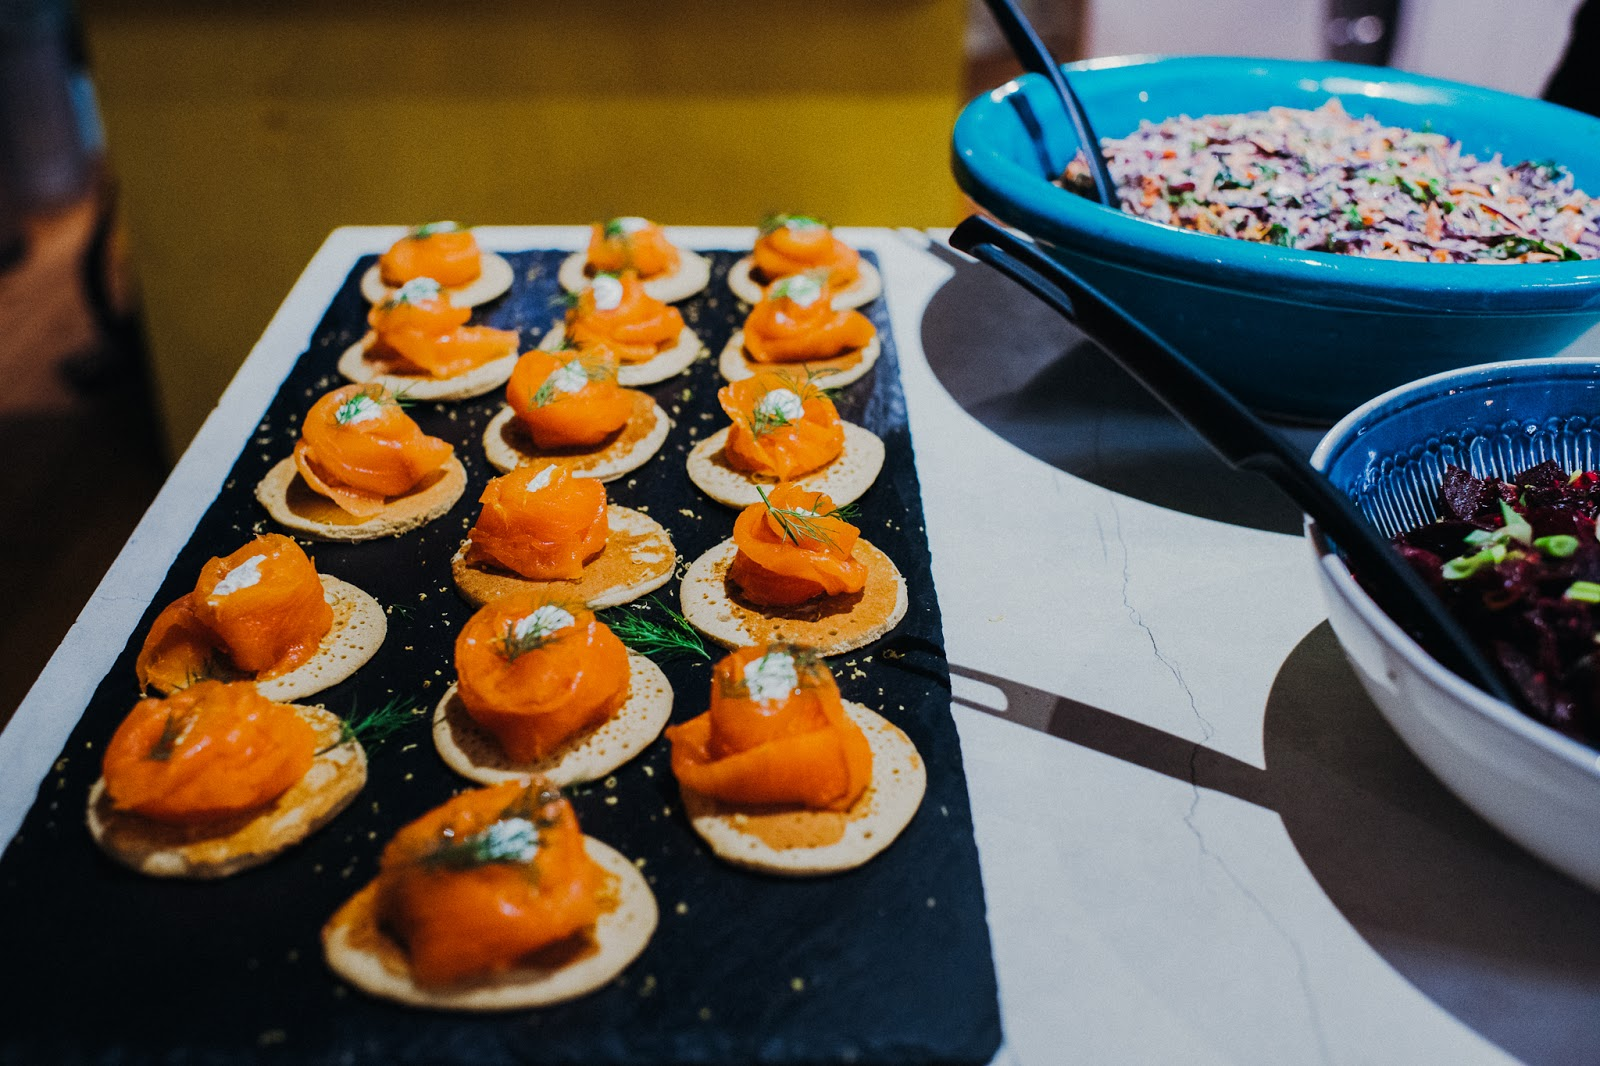 Rows of smoked salmon rolled onto savoury pancakes.